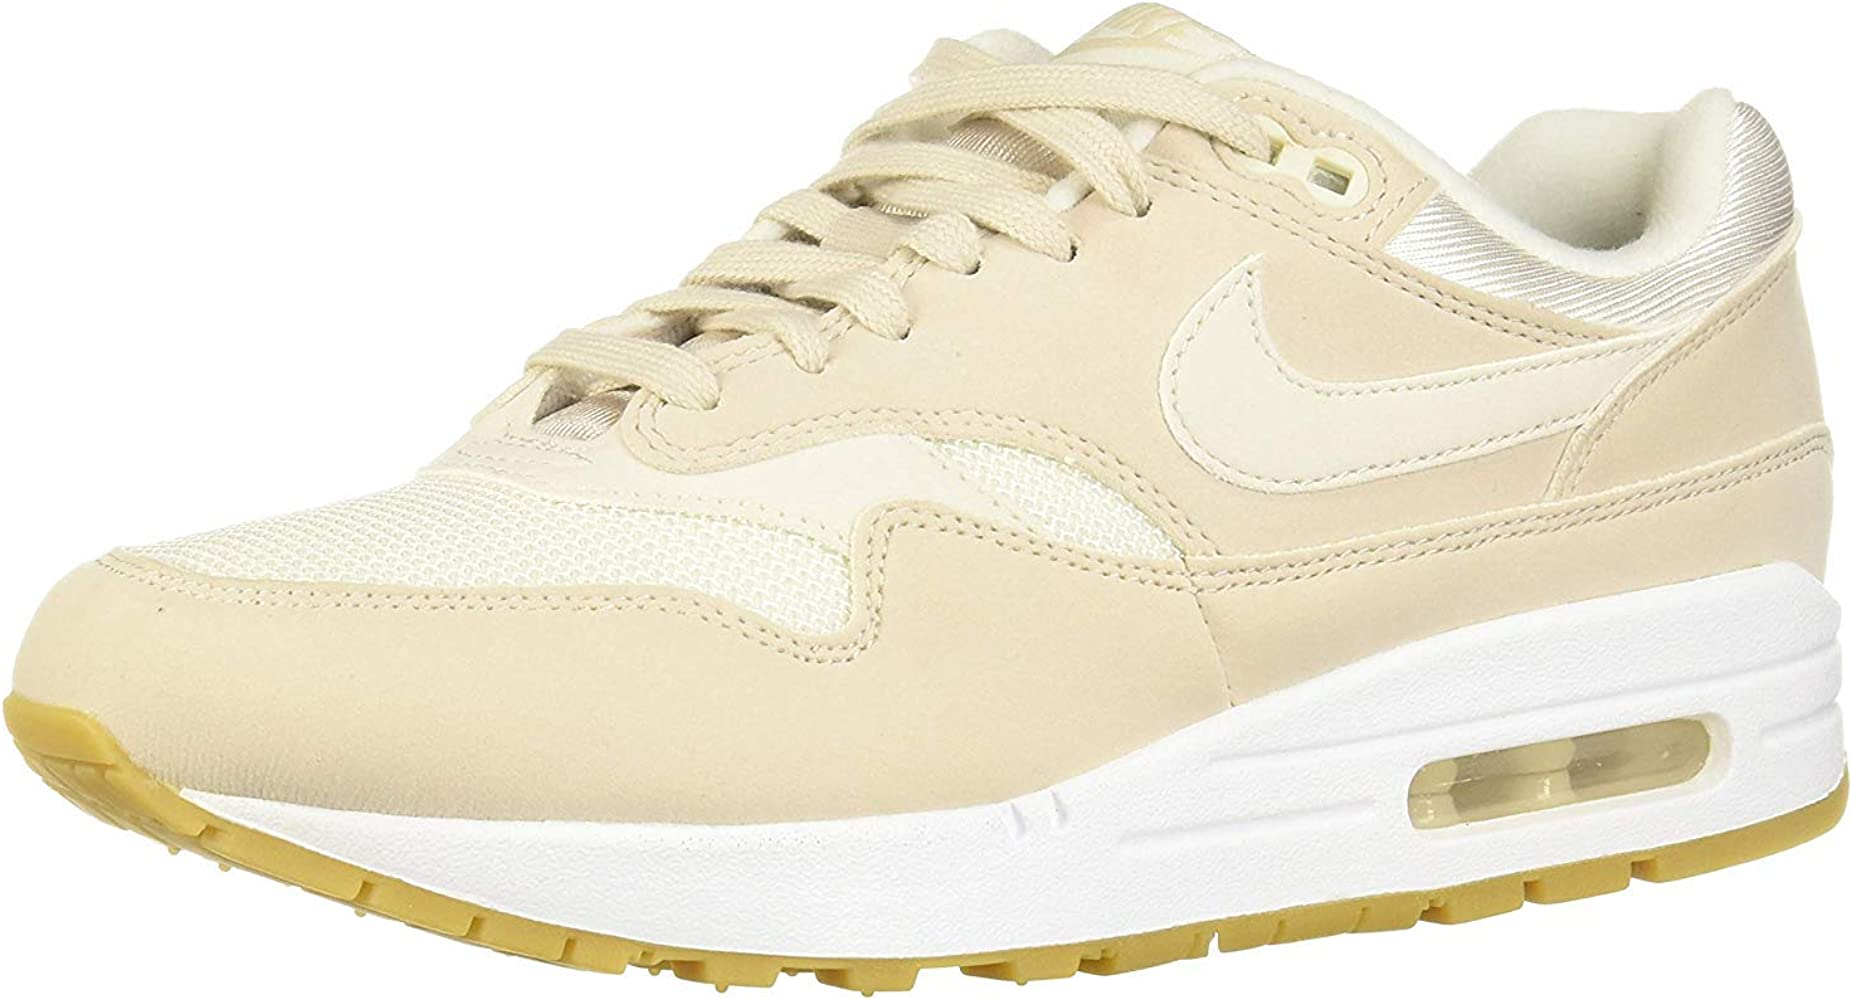 Nike Wmns Air MAX 1, Zapatillas de Running para Mujer, Multicolor (Desert Sand/Phantom/Gum Light Brown 036), 36.5 EU: Amazon.es: Zapatos y complementos